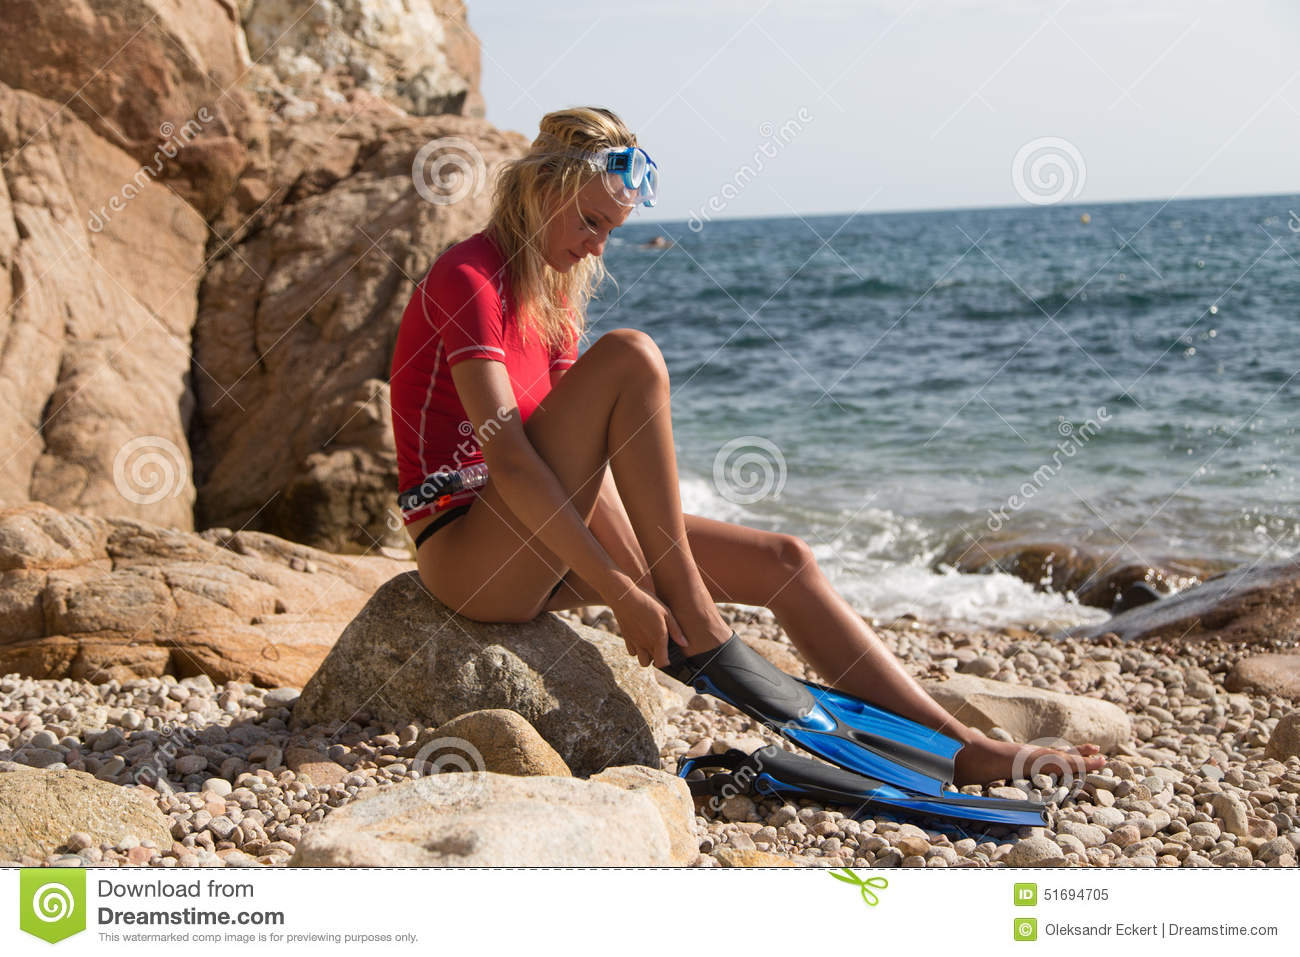 Think, that Scuba diving sexy women was